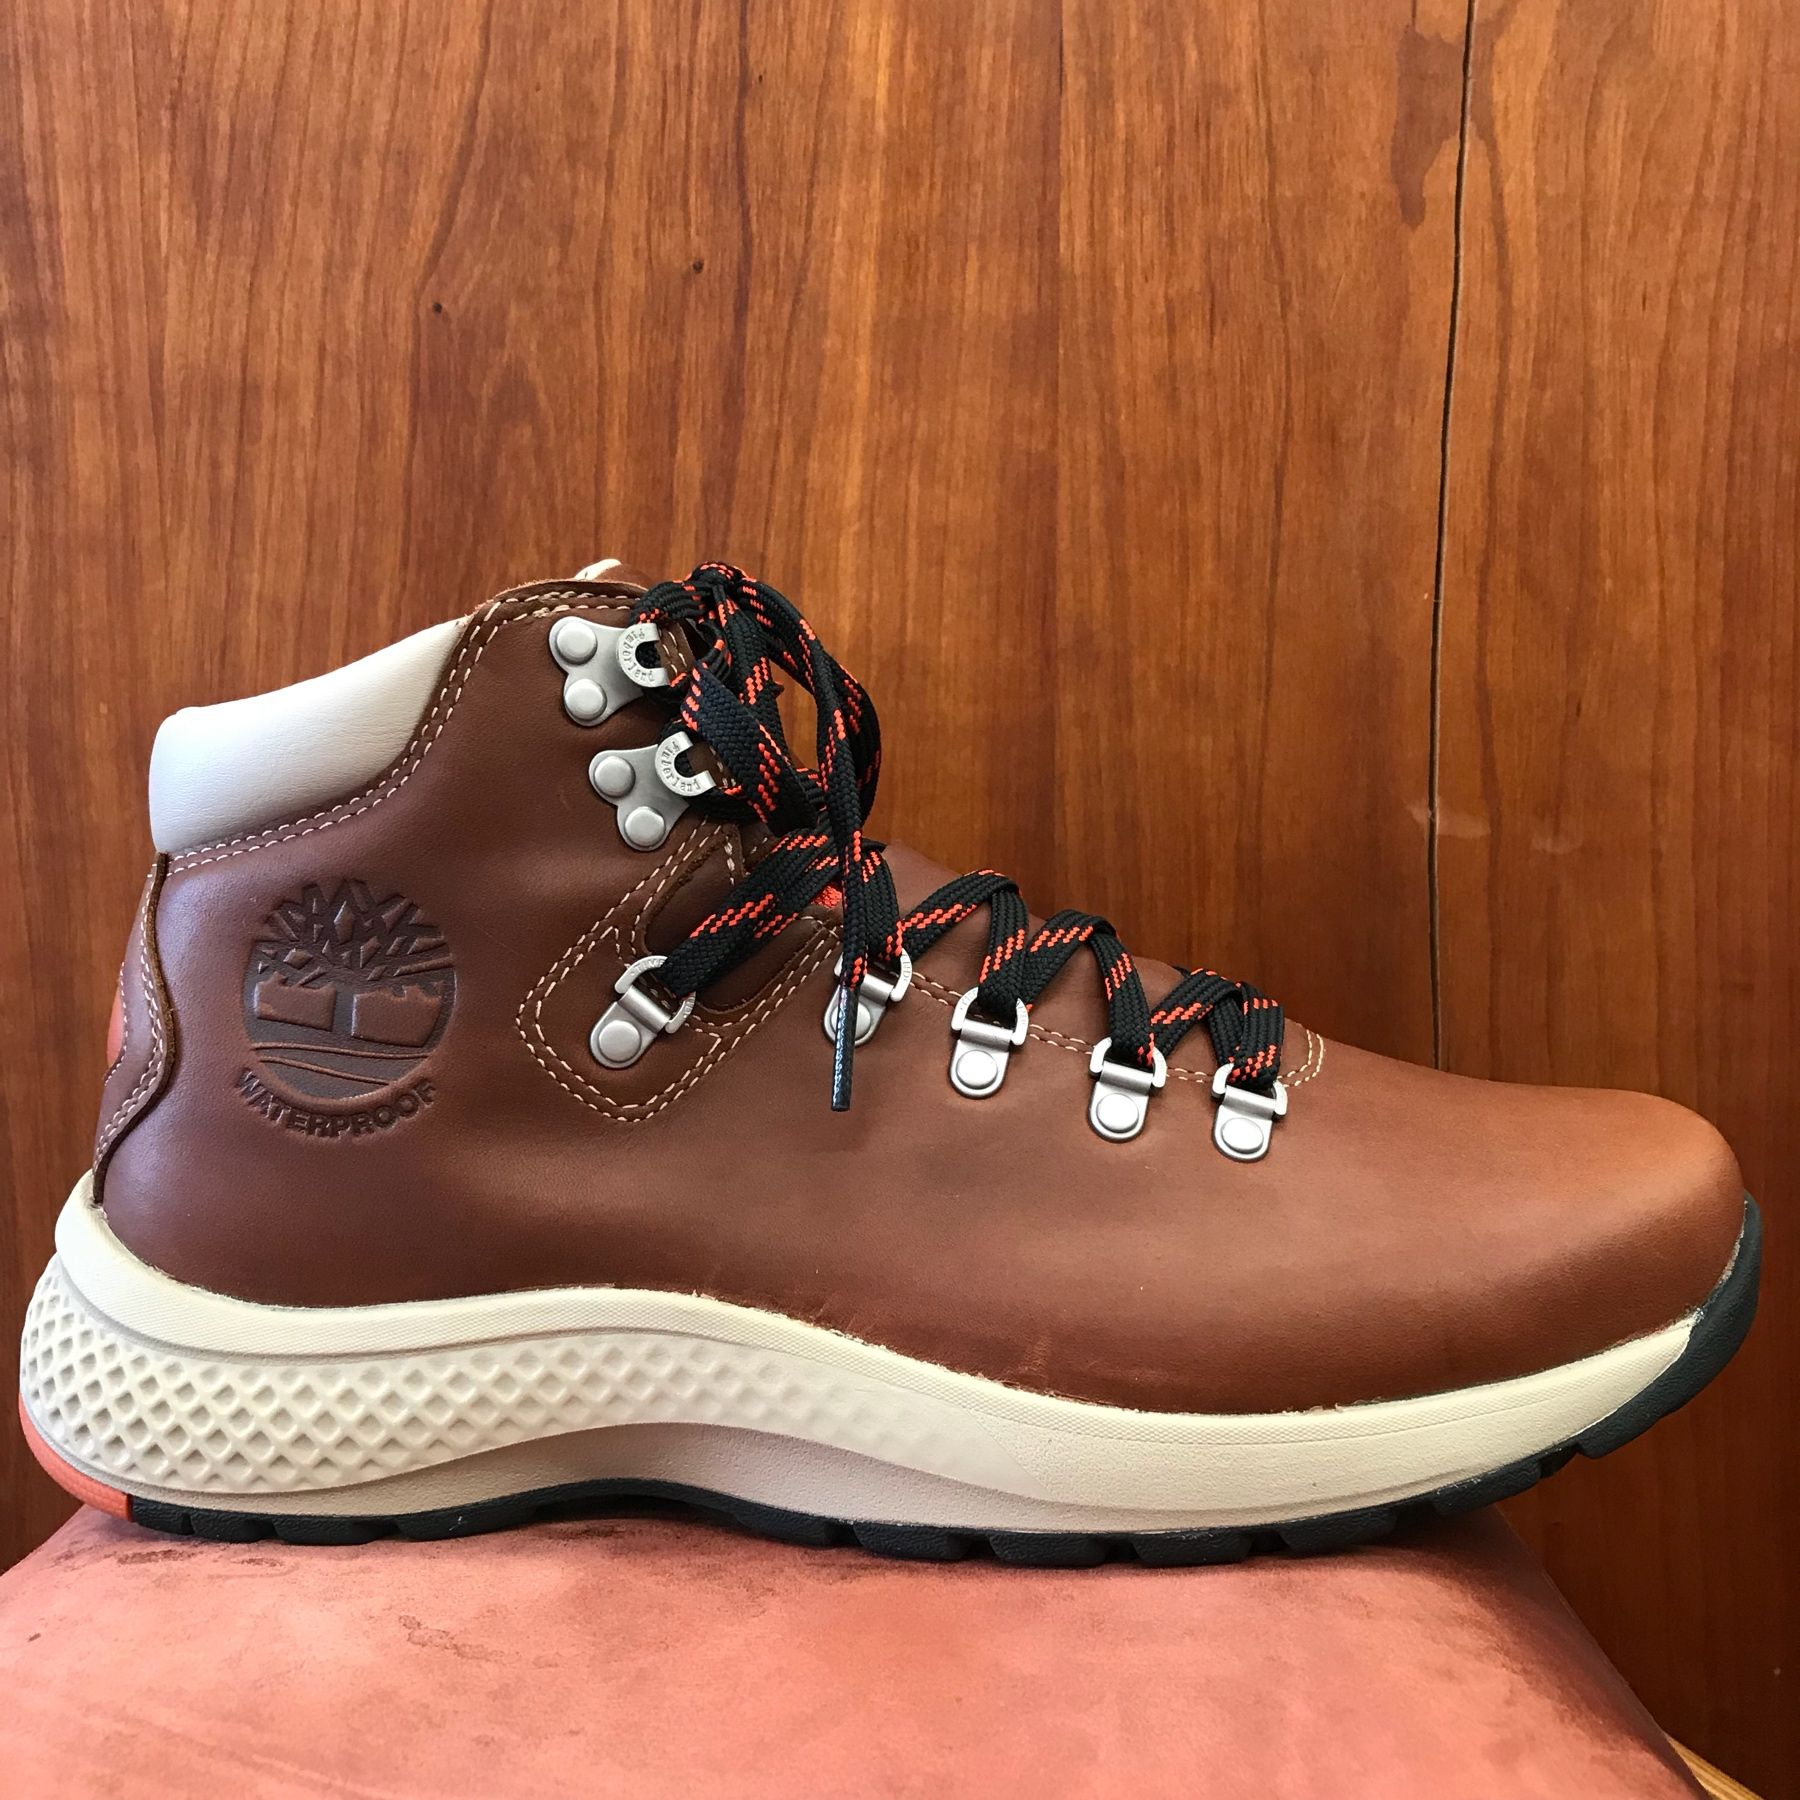 bbe944f423b Fall Timberland styles are in! The 1978 Aerocore Flyroam is a ...